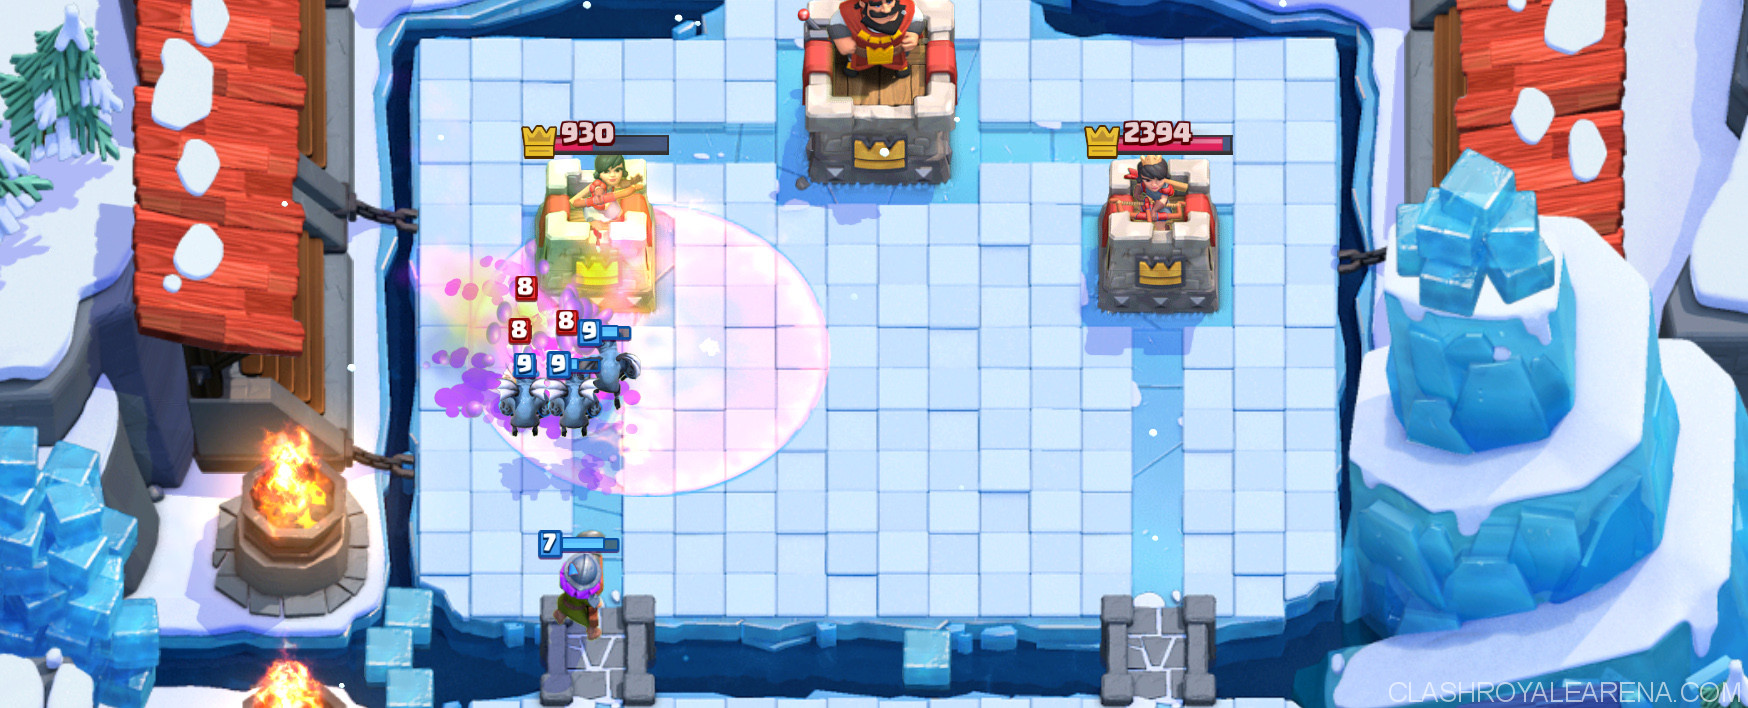 Musketeer Miner The Burning Deck Clash Royale Guides